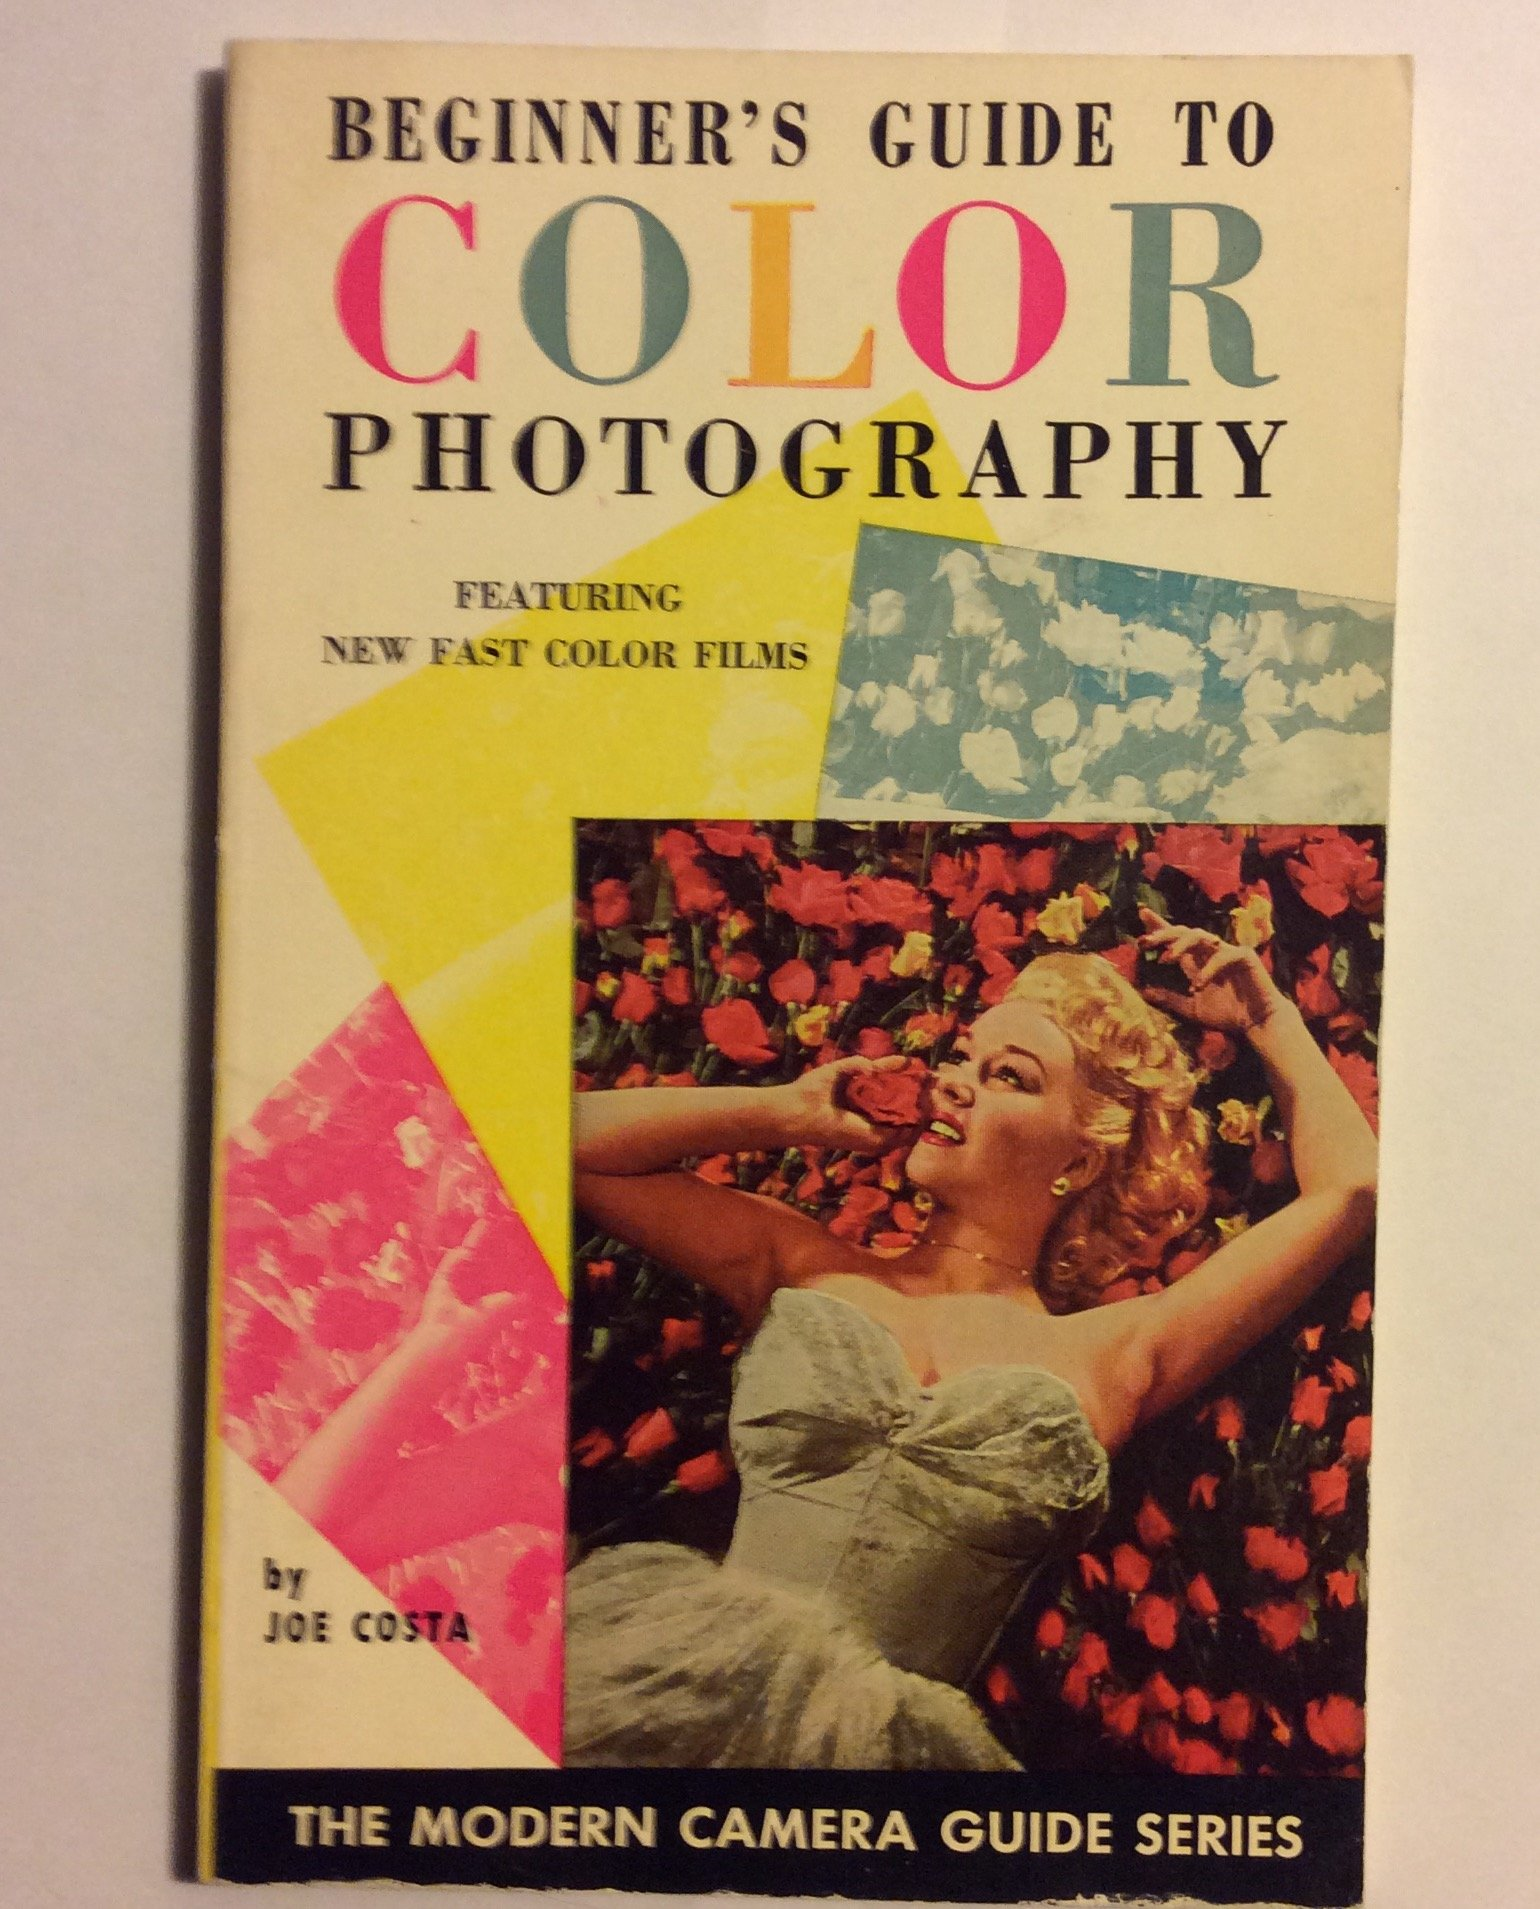 Beginner's guide to color photography (The Modern camera guide series)